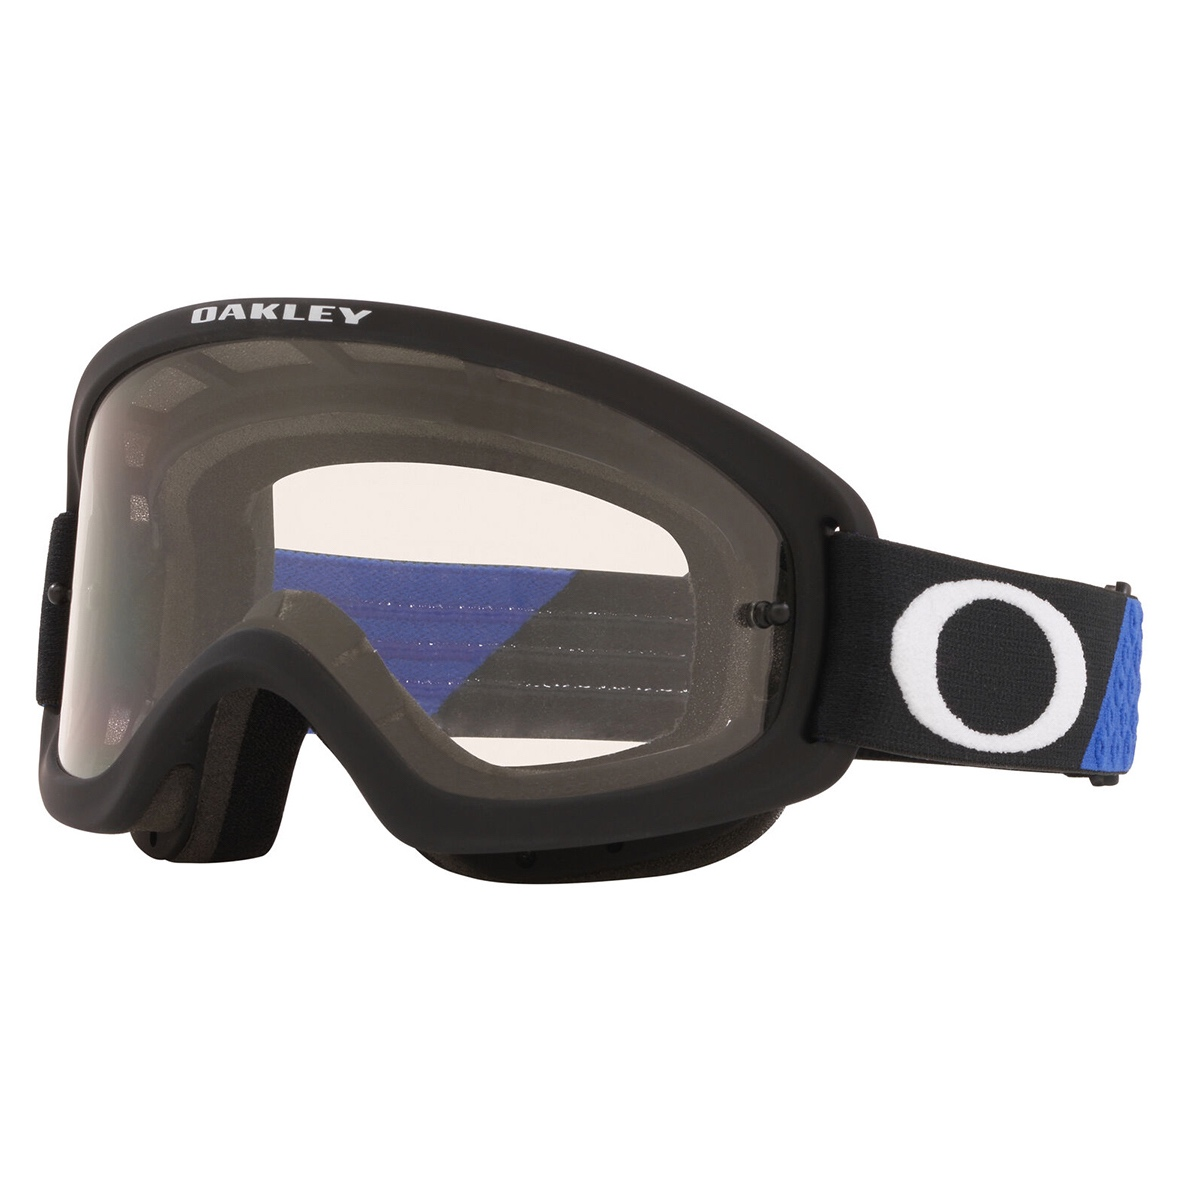 Oakley xs o frame 2. 0 pro youth goggle heritage b1b blue/black - clear lens - 0oo7116 711601